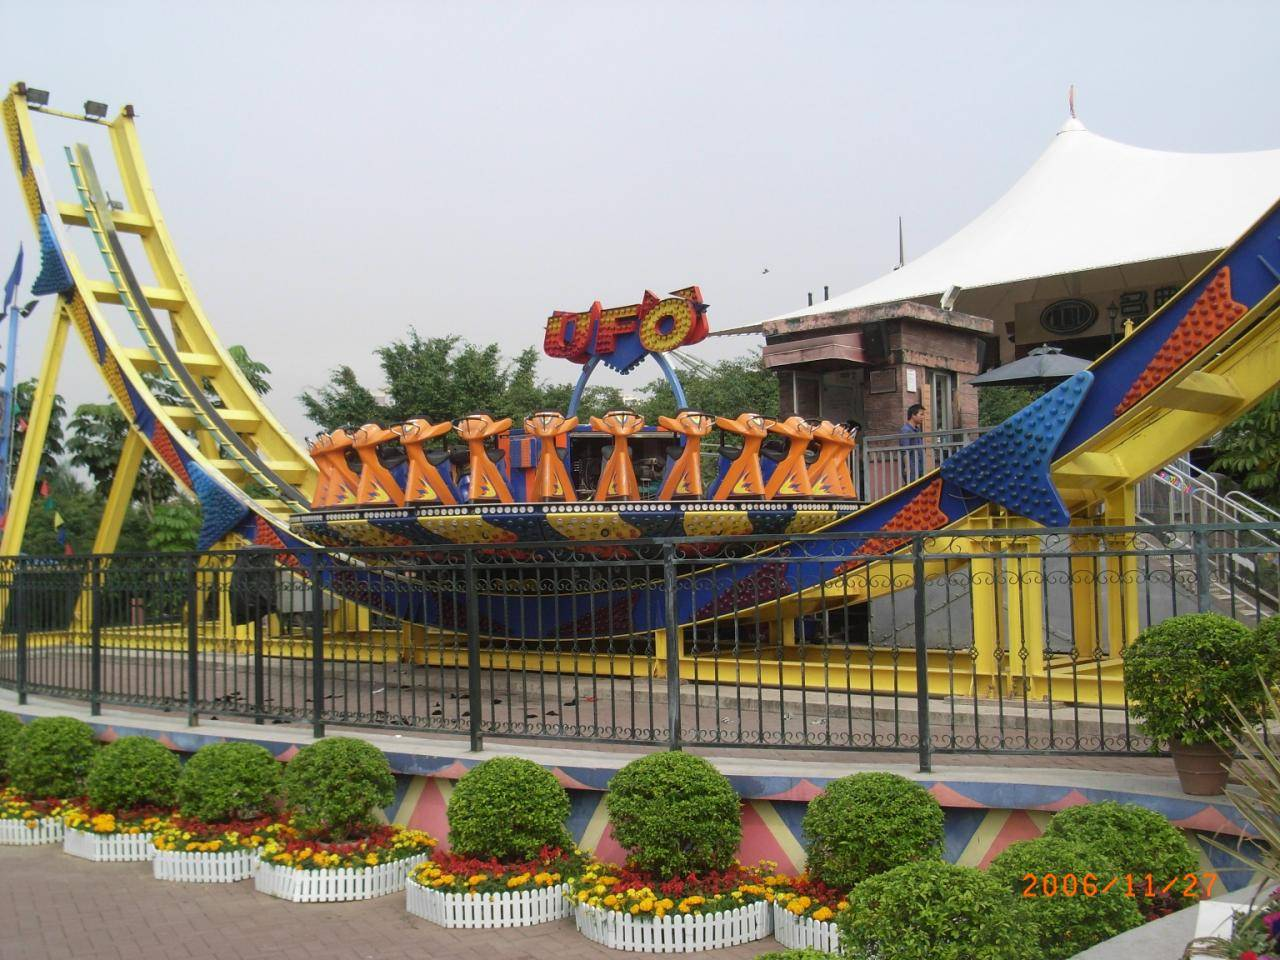 UFO/Disc ride Thrill Amusement Rides